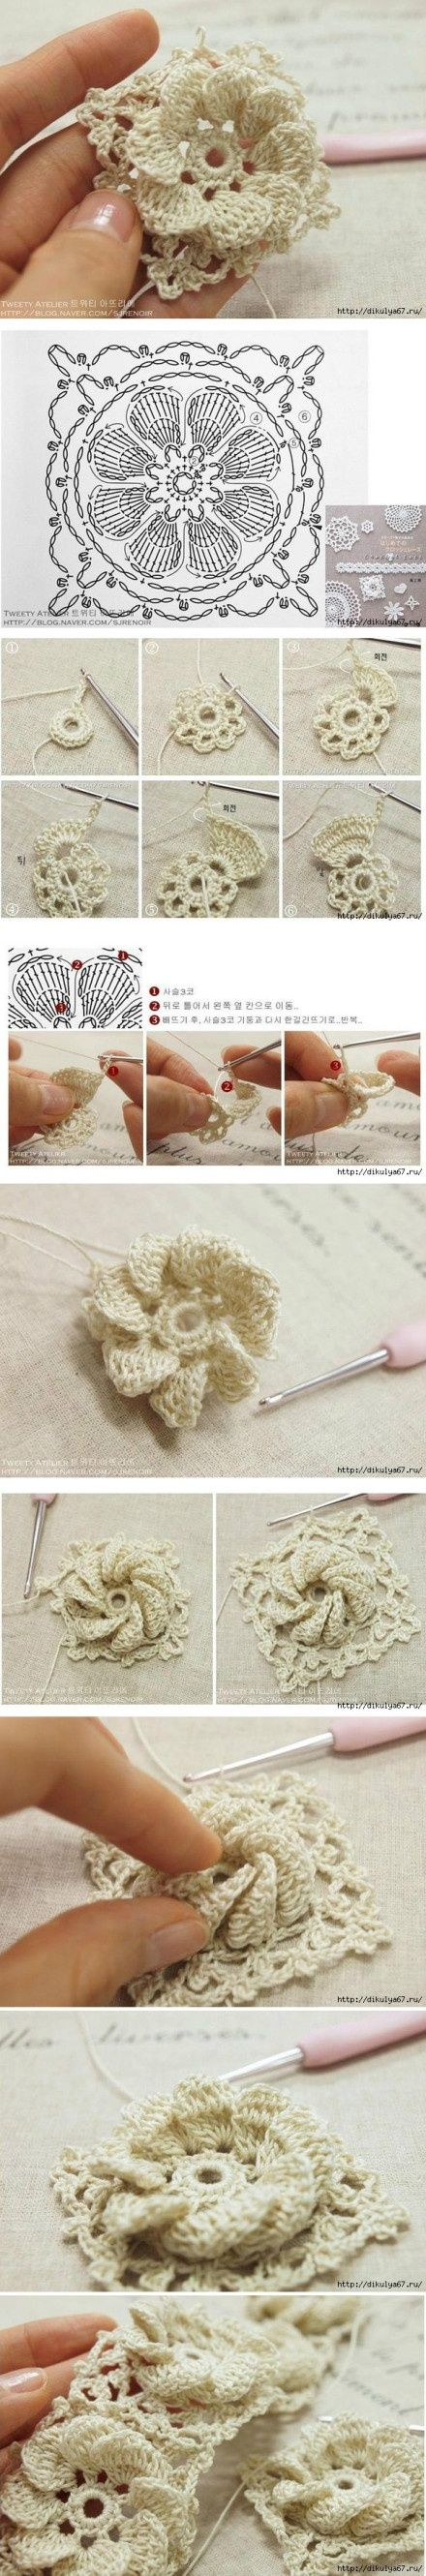 """#Crochet_Tutorial - """"This pretty flower design is surrounded by crochet to make it a useful granny square. Can be combined with other squares or used all together for a bag or pillow cover perhaps"""" Enjoy from #KnittingGuru http://www.KnittingGuru.etsy.com"""